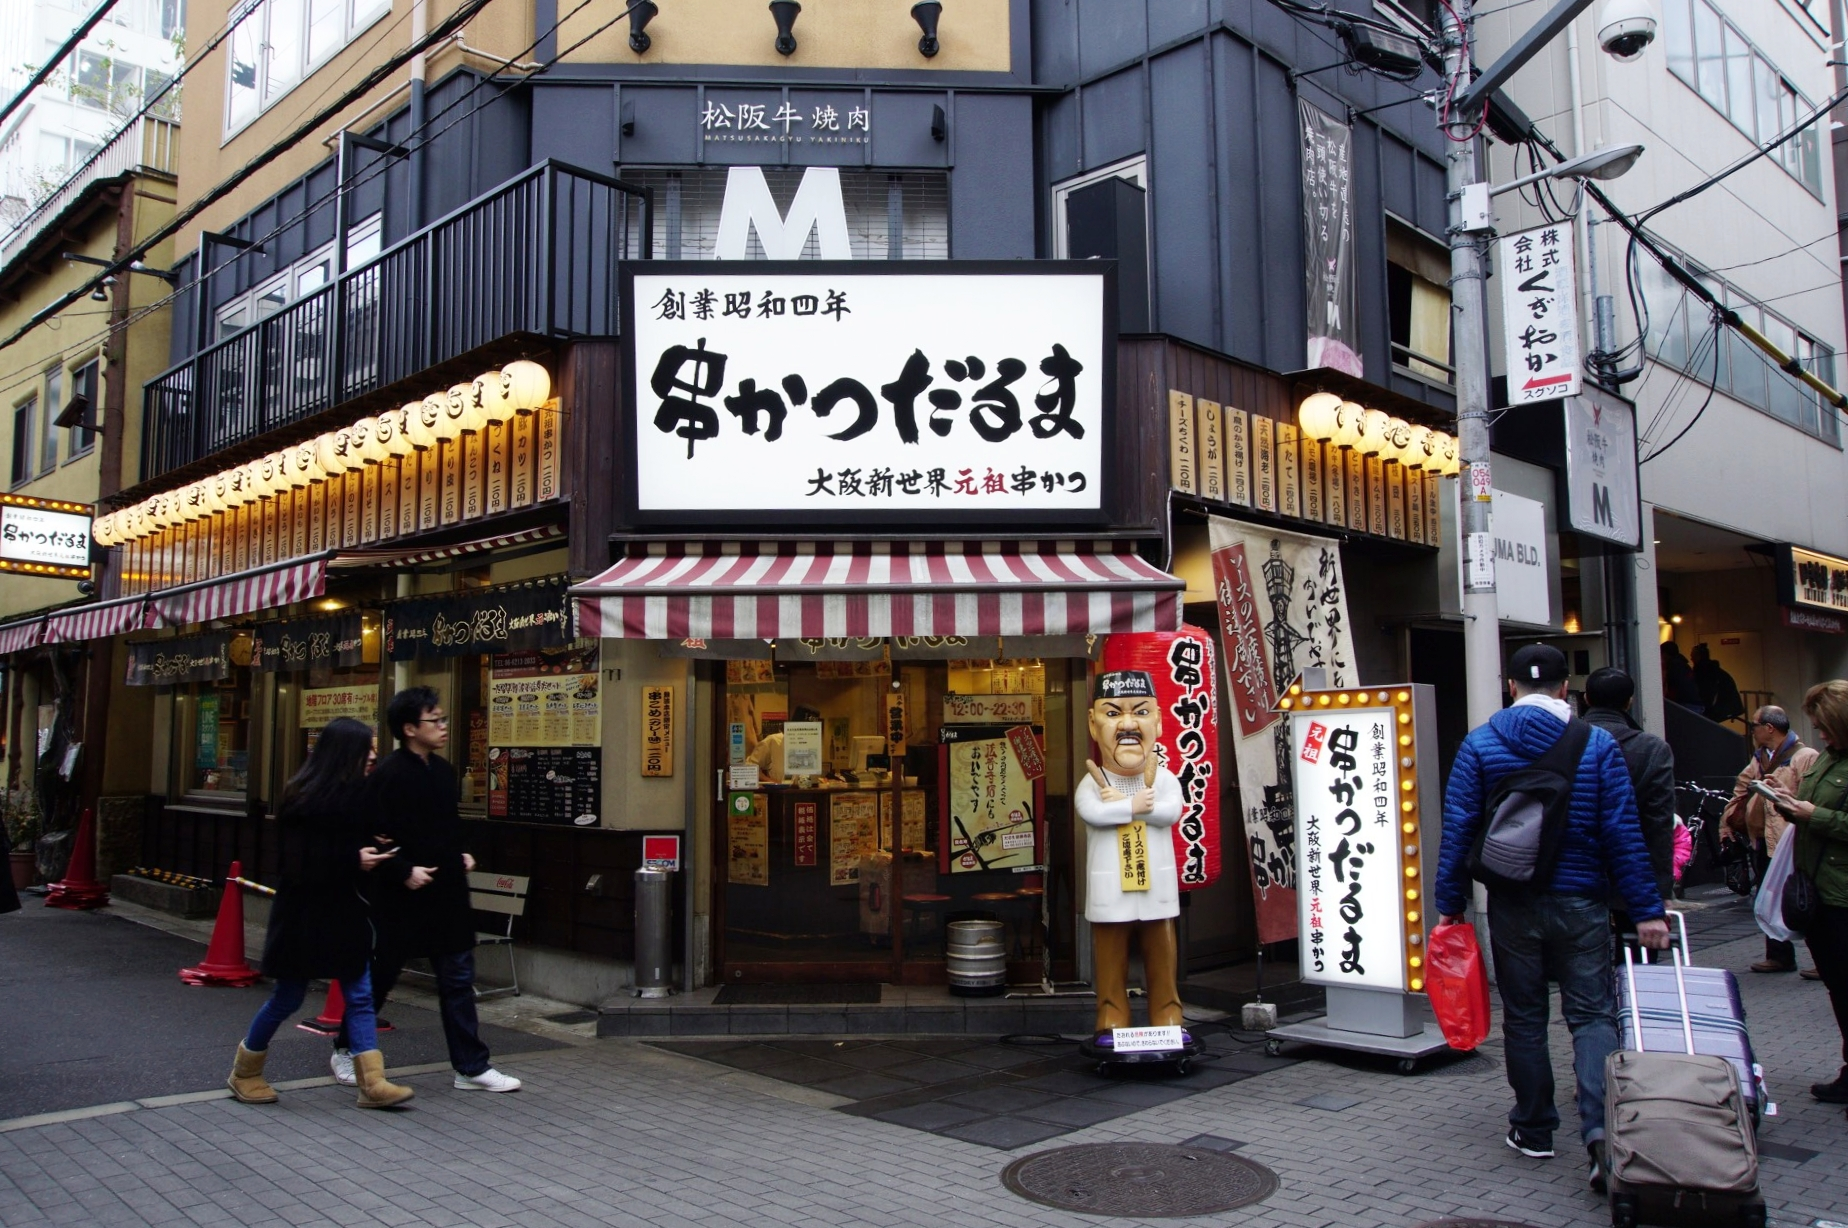 The shop above it is Matsuzakagyu Yakiniku M. The restaurant is very famous for its beef.